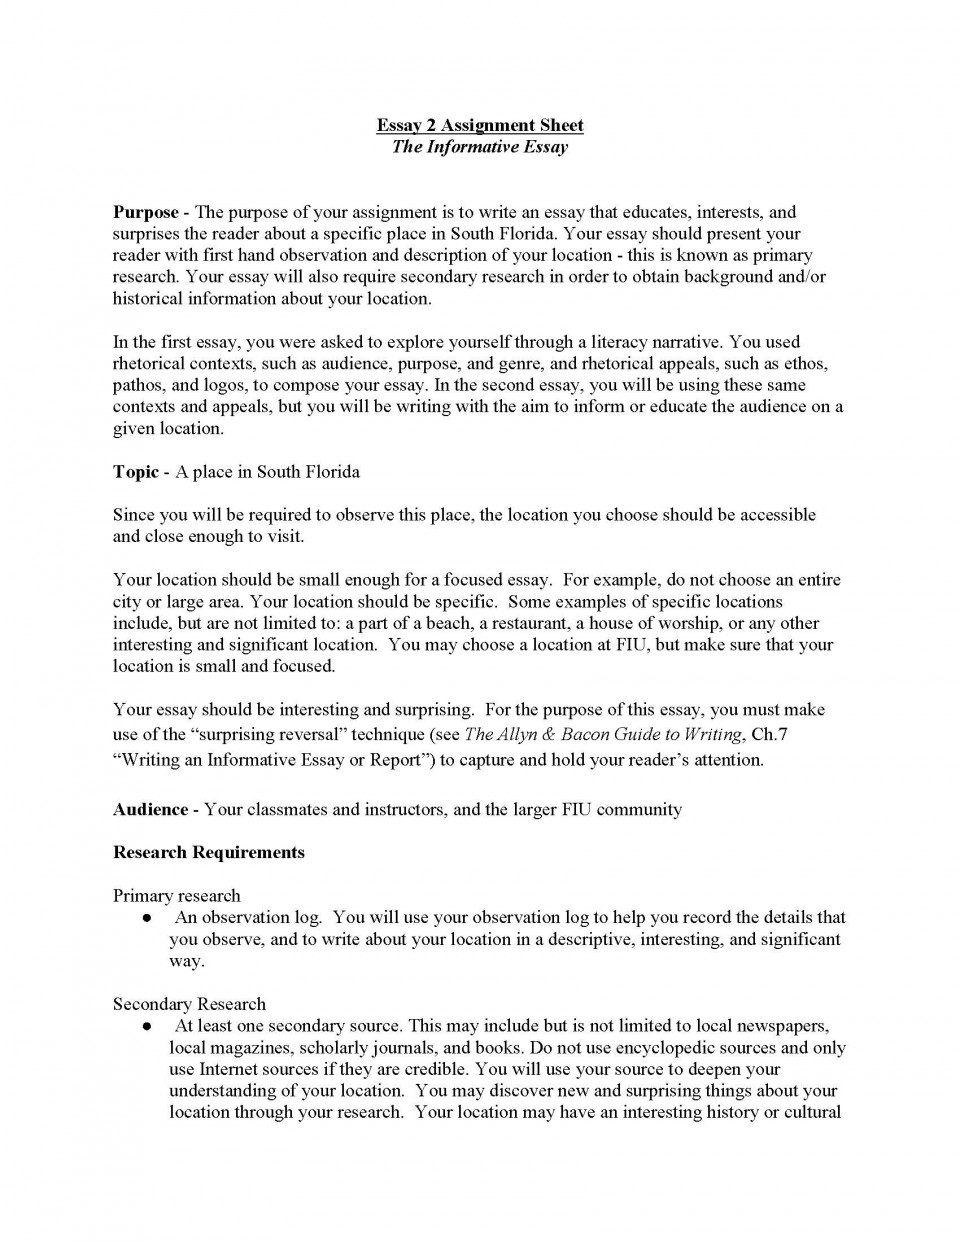 003 Informative Essay Unit Assignment Page 1 Ideas Wondrous Prompts Writing Topics 4th Grade Expository Middle School 960